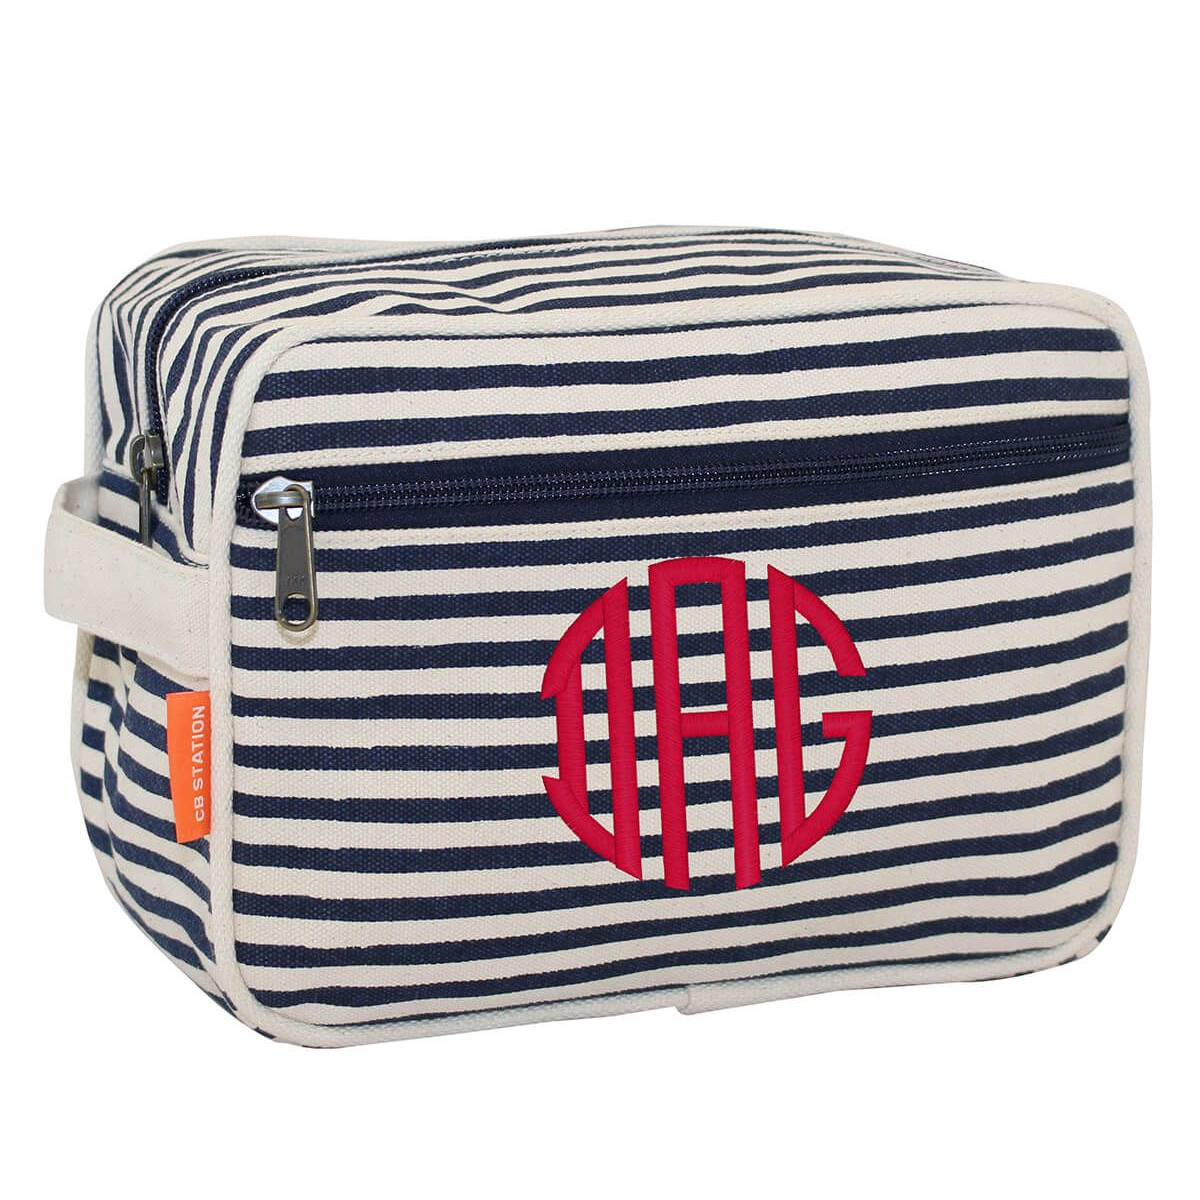 Personalized Navy Stripes Canvas Travel Bag